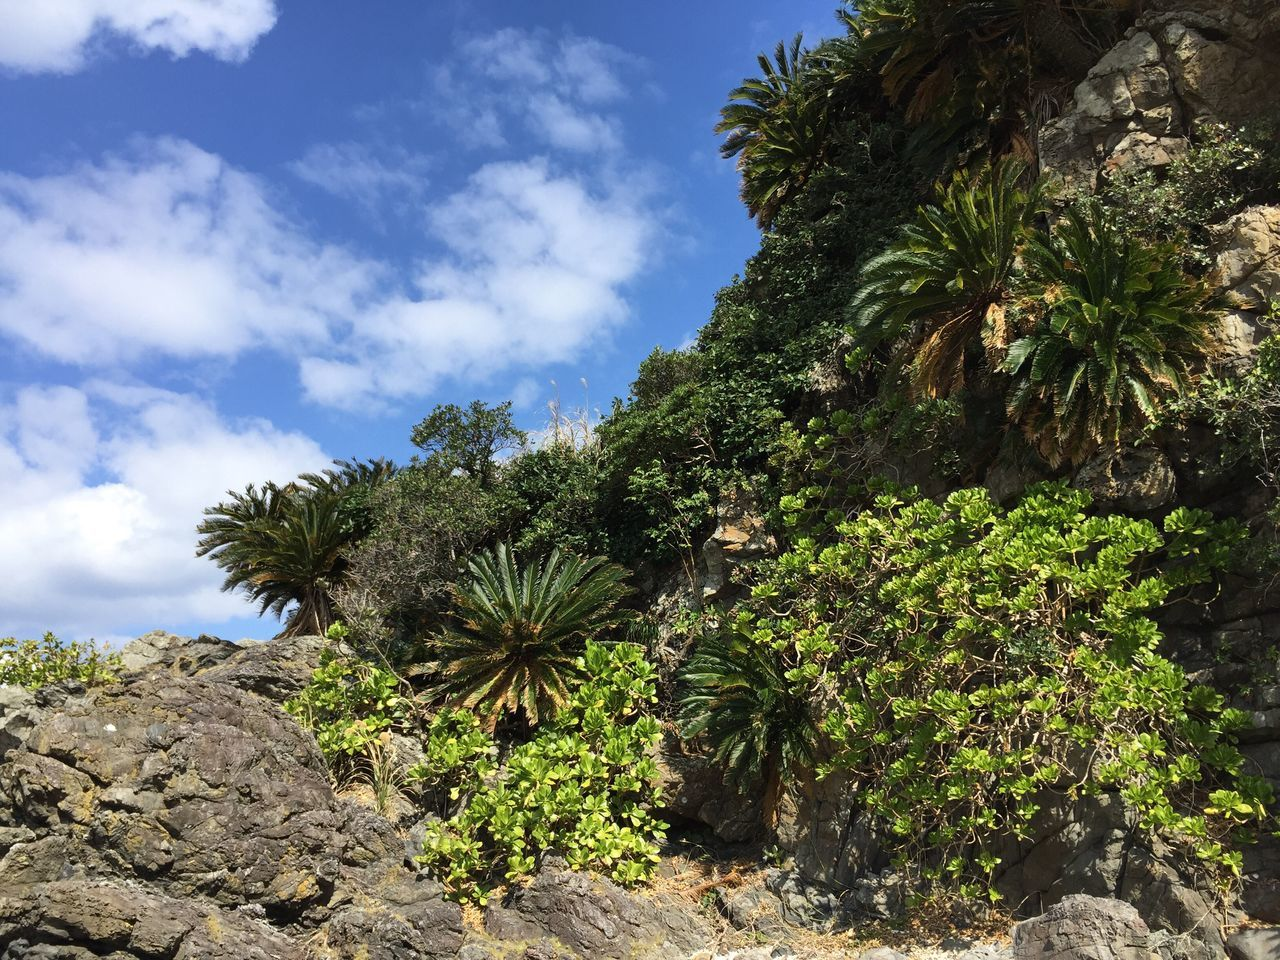 Tree Growth Nature Sky Cloud - Sky Palm Tree No People Beauty In Nature Green Color Outdoors Rock - Object Low Angle View Plant Scenics Day Green Color Amami Island